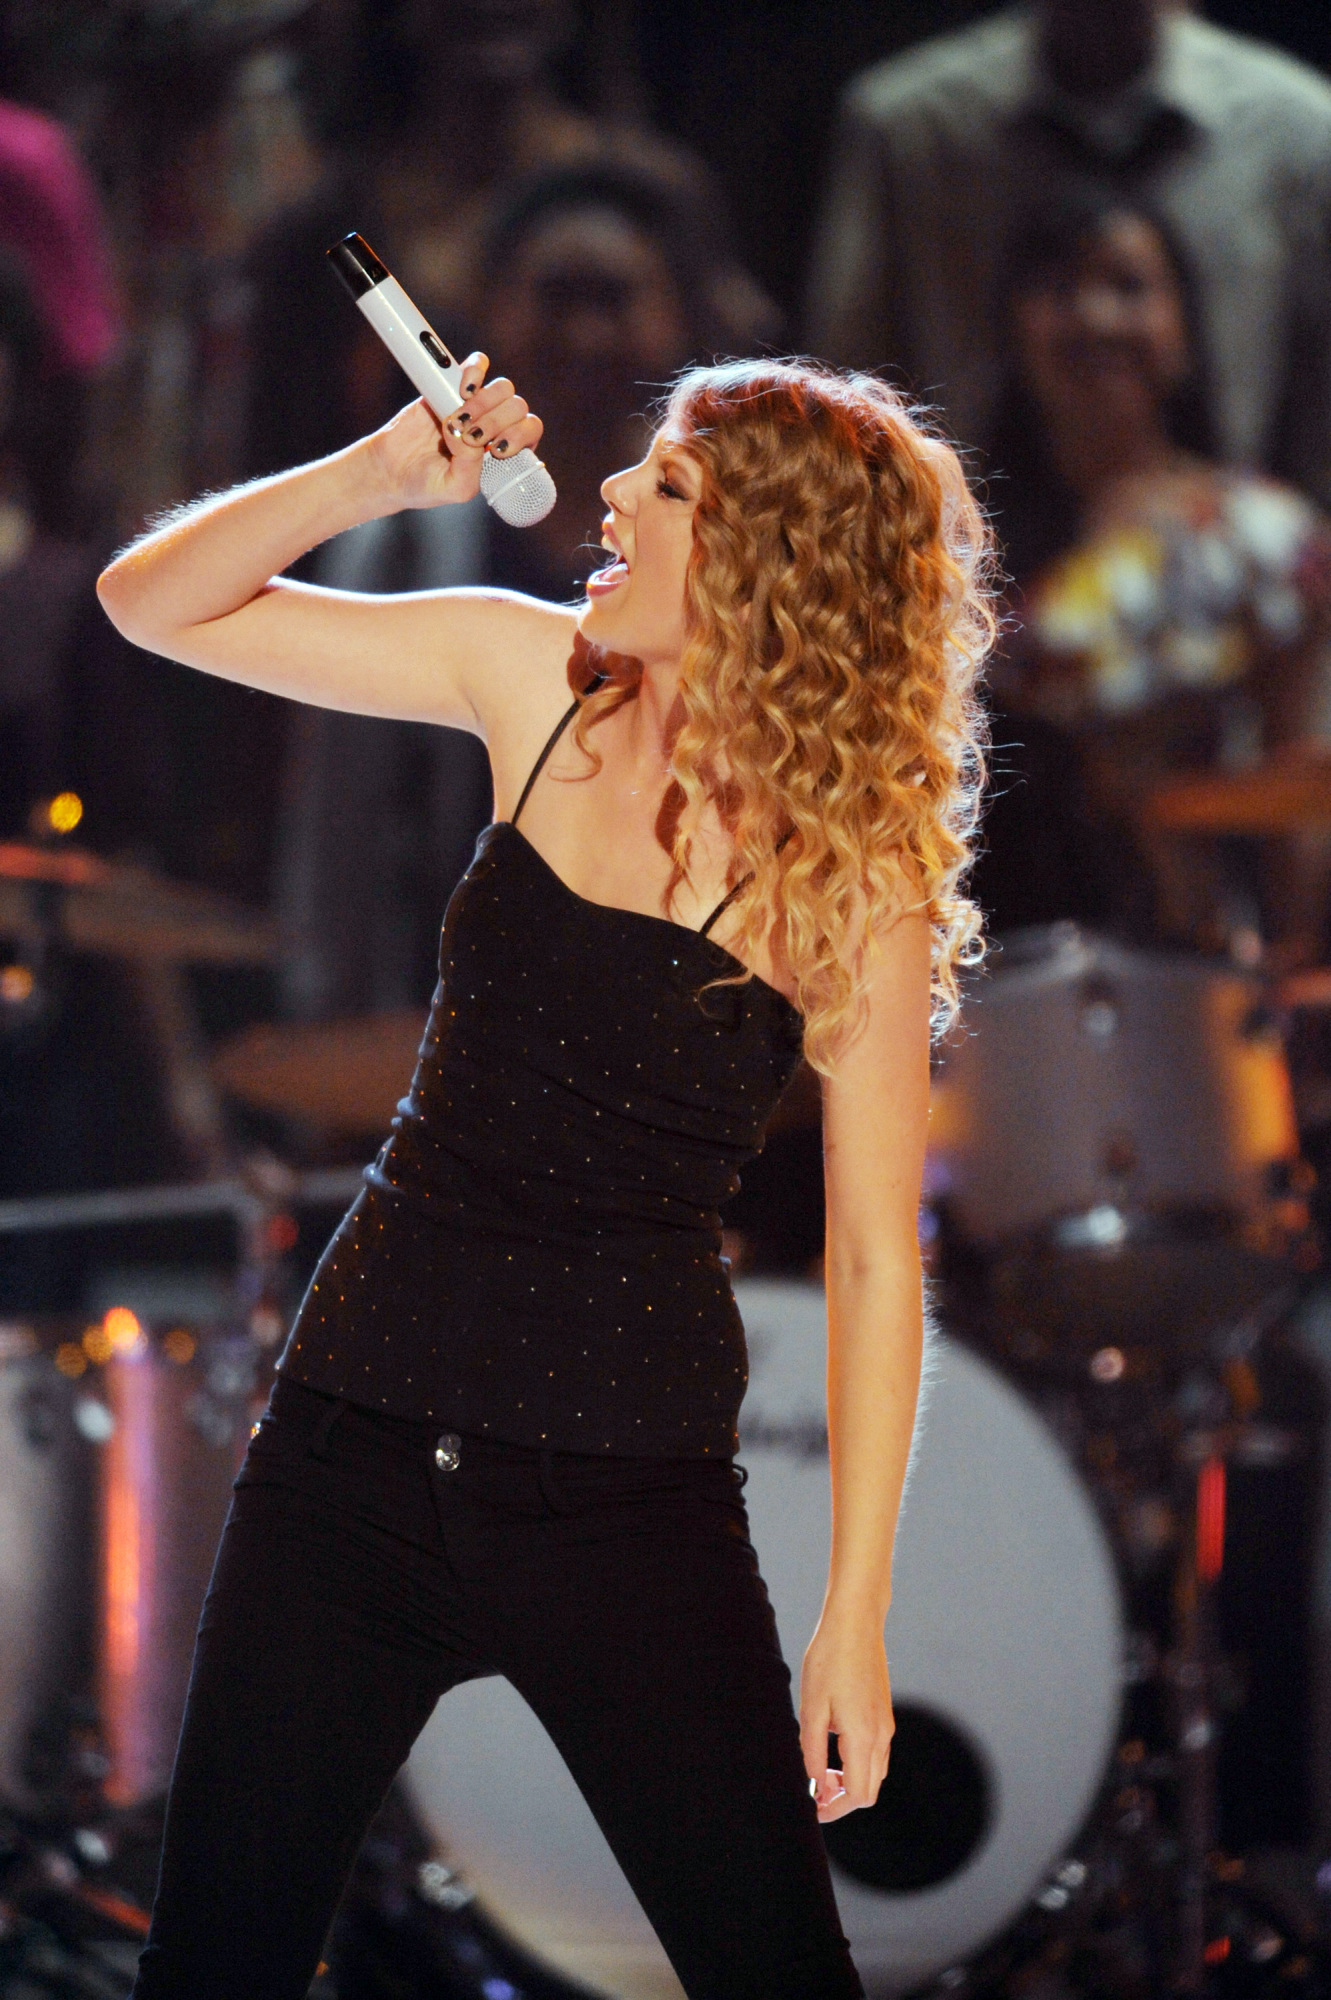 Reigning Entertainer of the Year winner Taylor Swift will perform at the ACM Awards